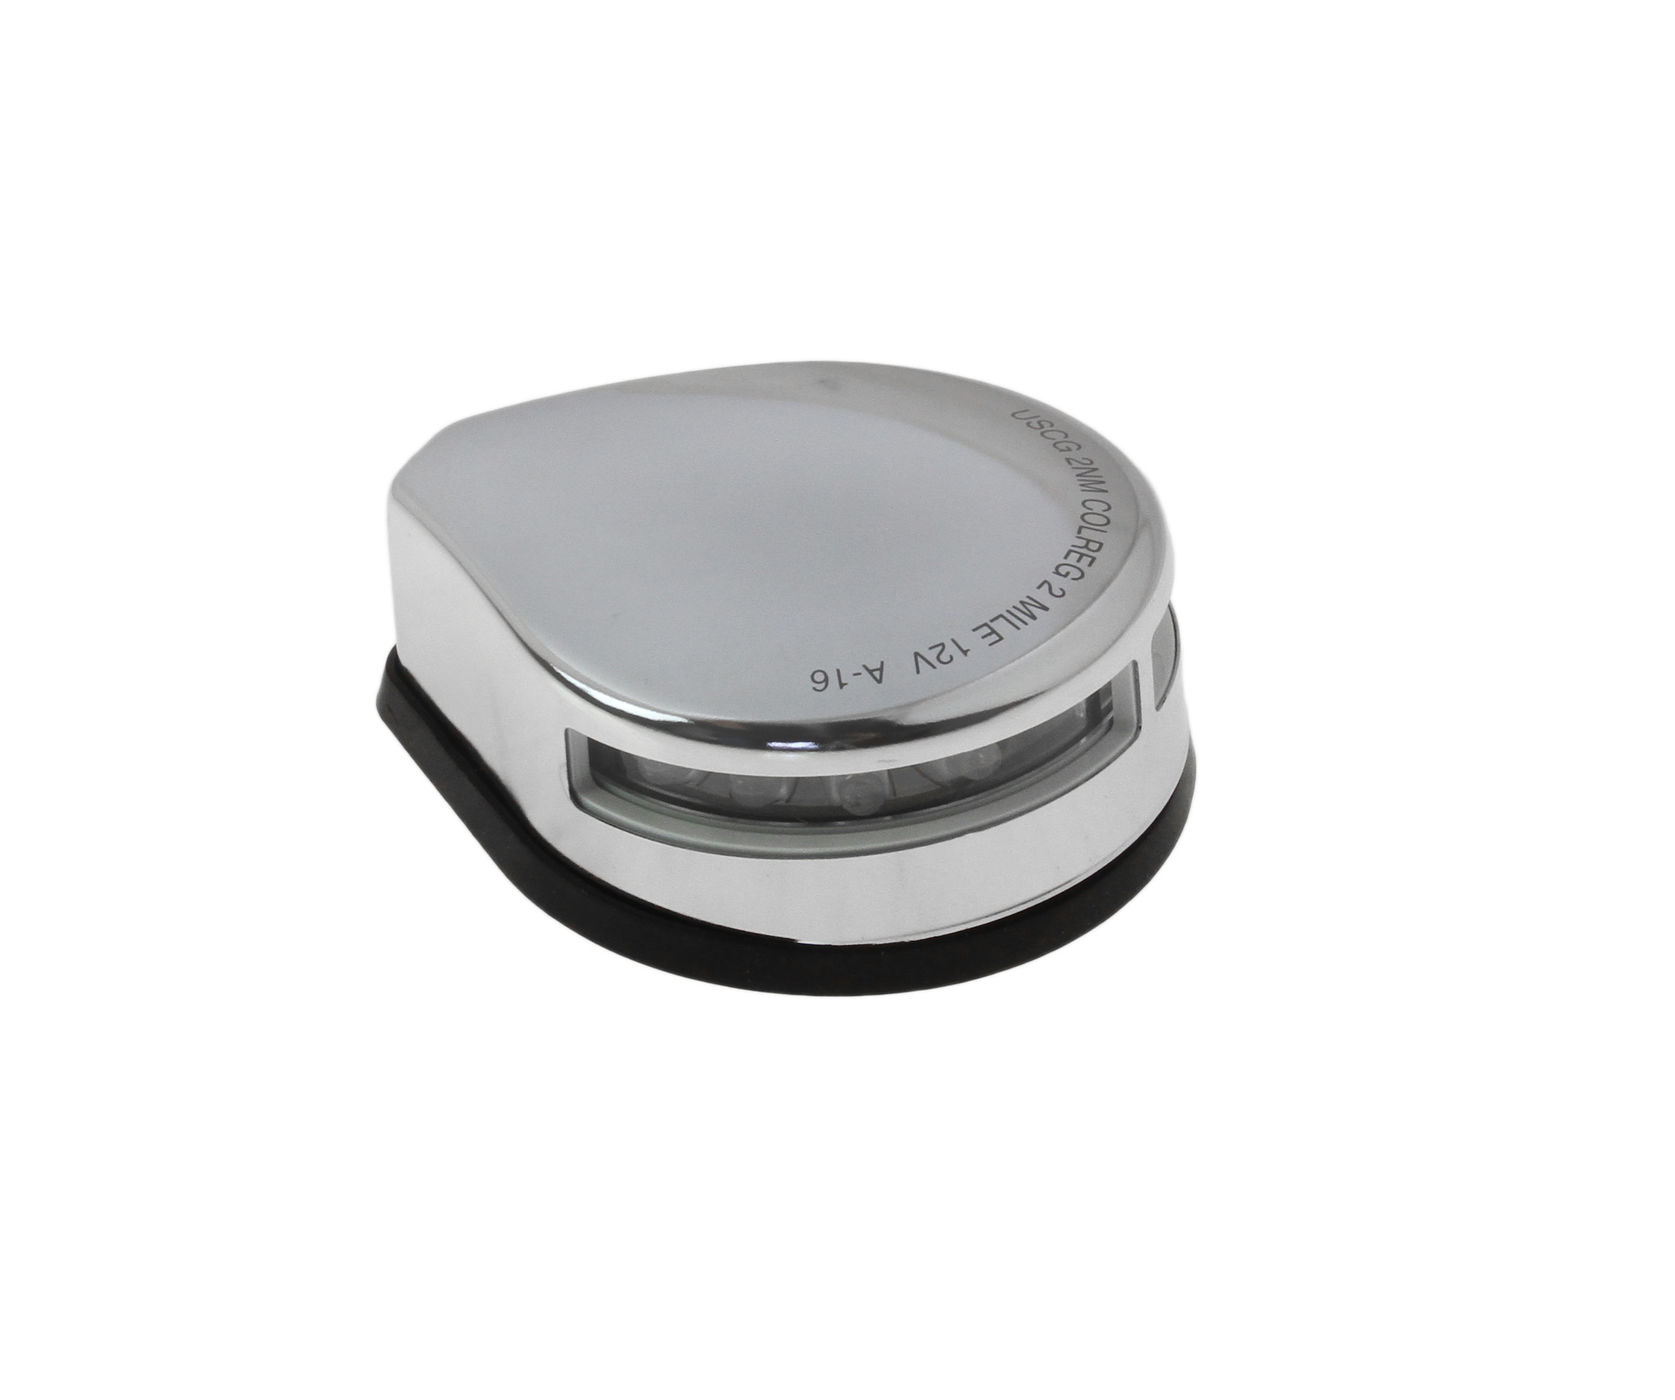 Fire Running Combo Stainless Steel Case With Seal C91017